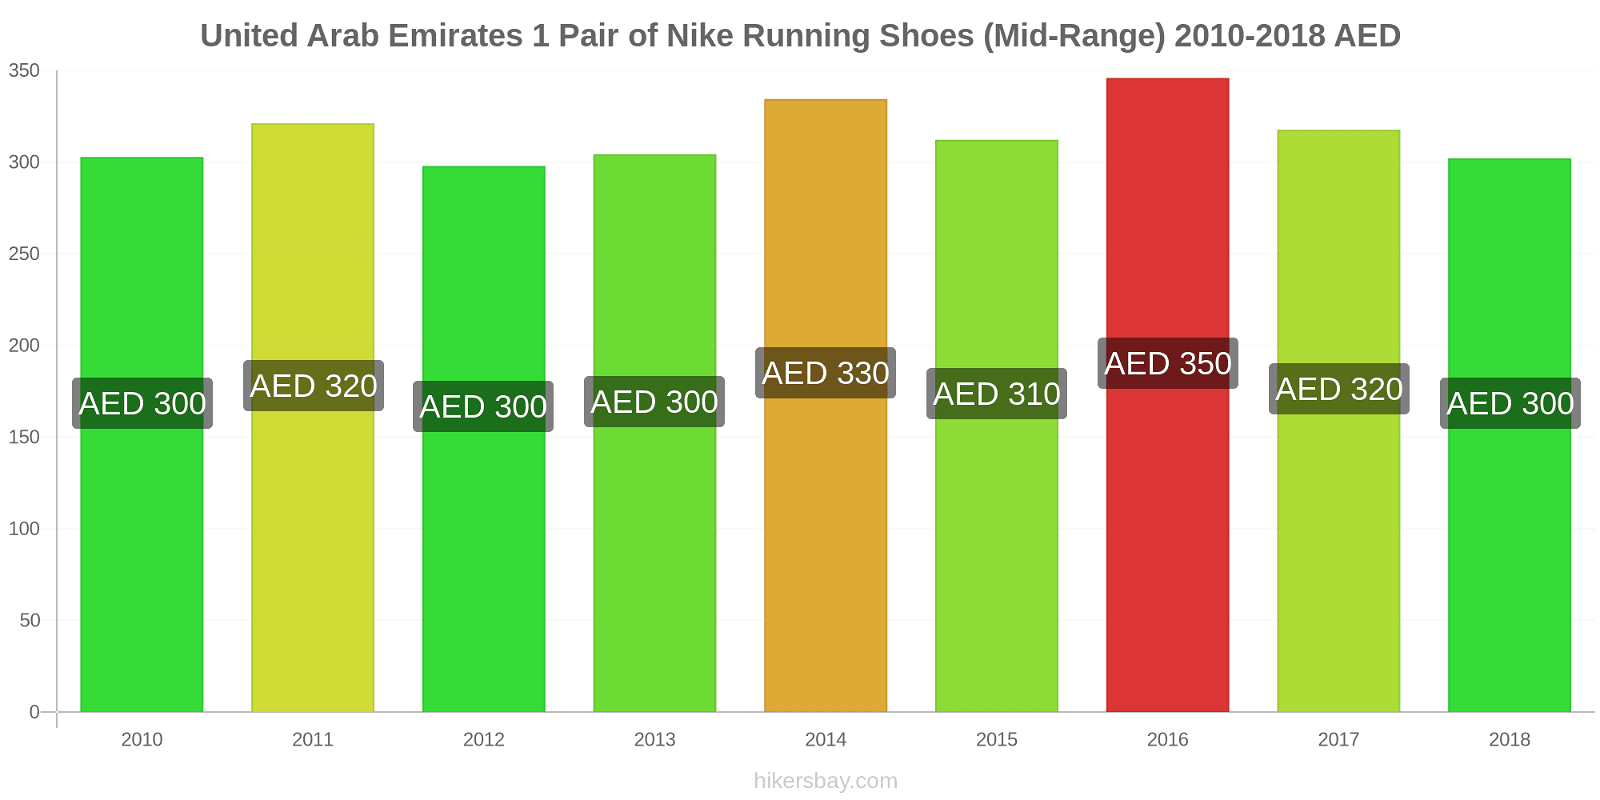 United Arab Emirates price changes 1 Pair of Nike Running Shoes (Mid-Range) hikersbay.com